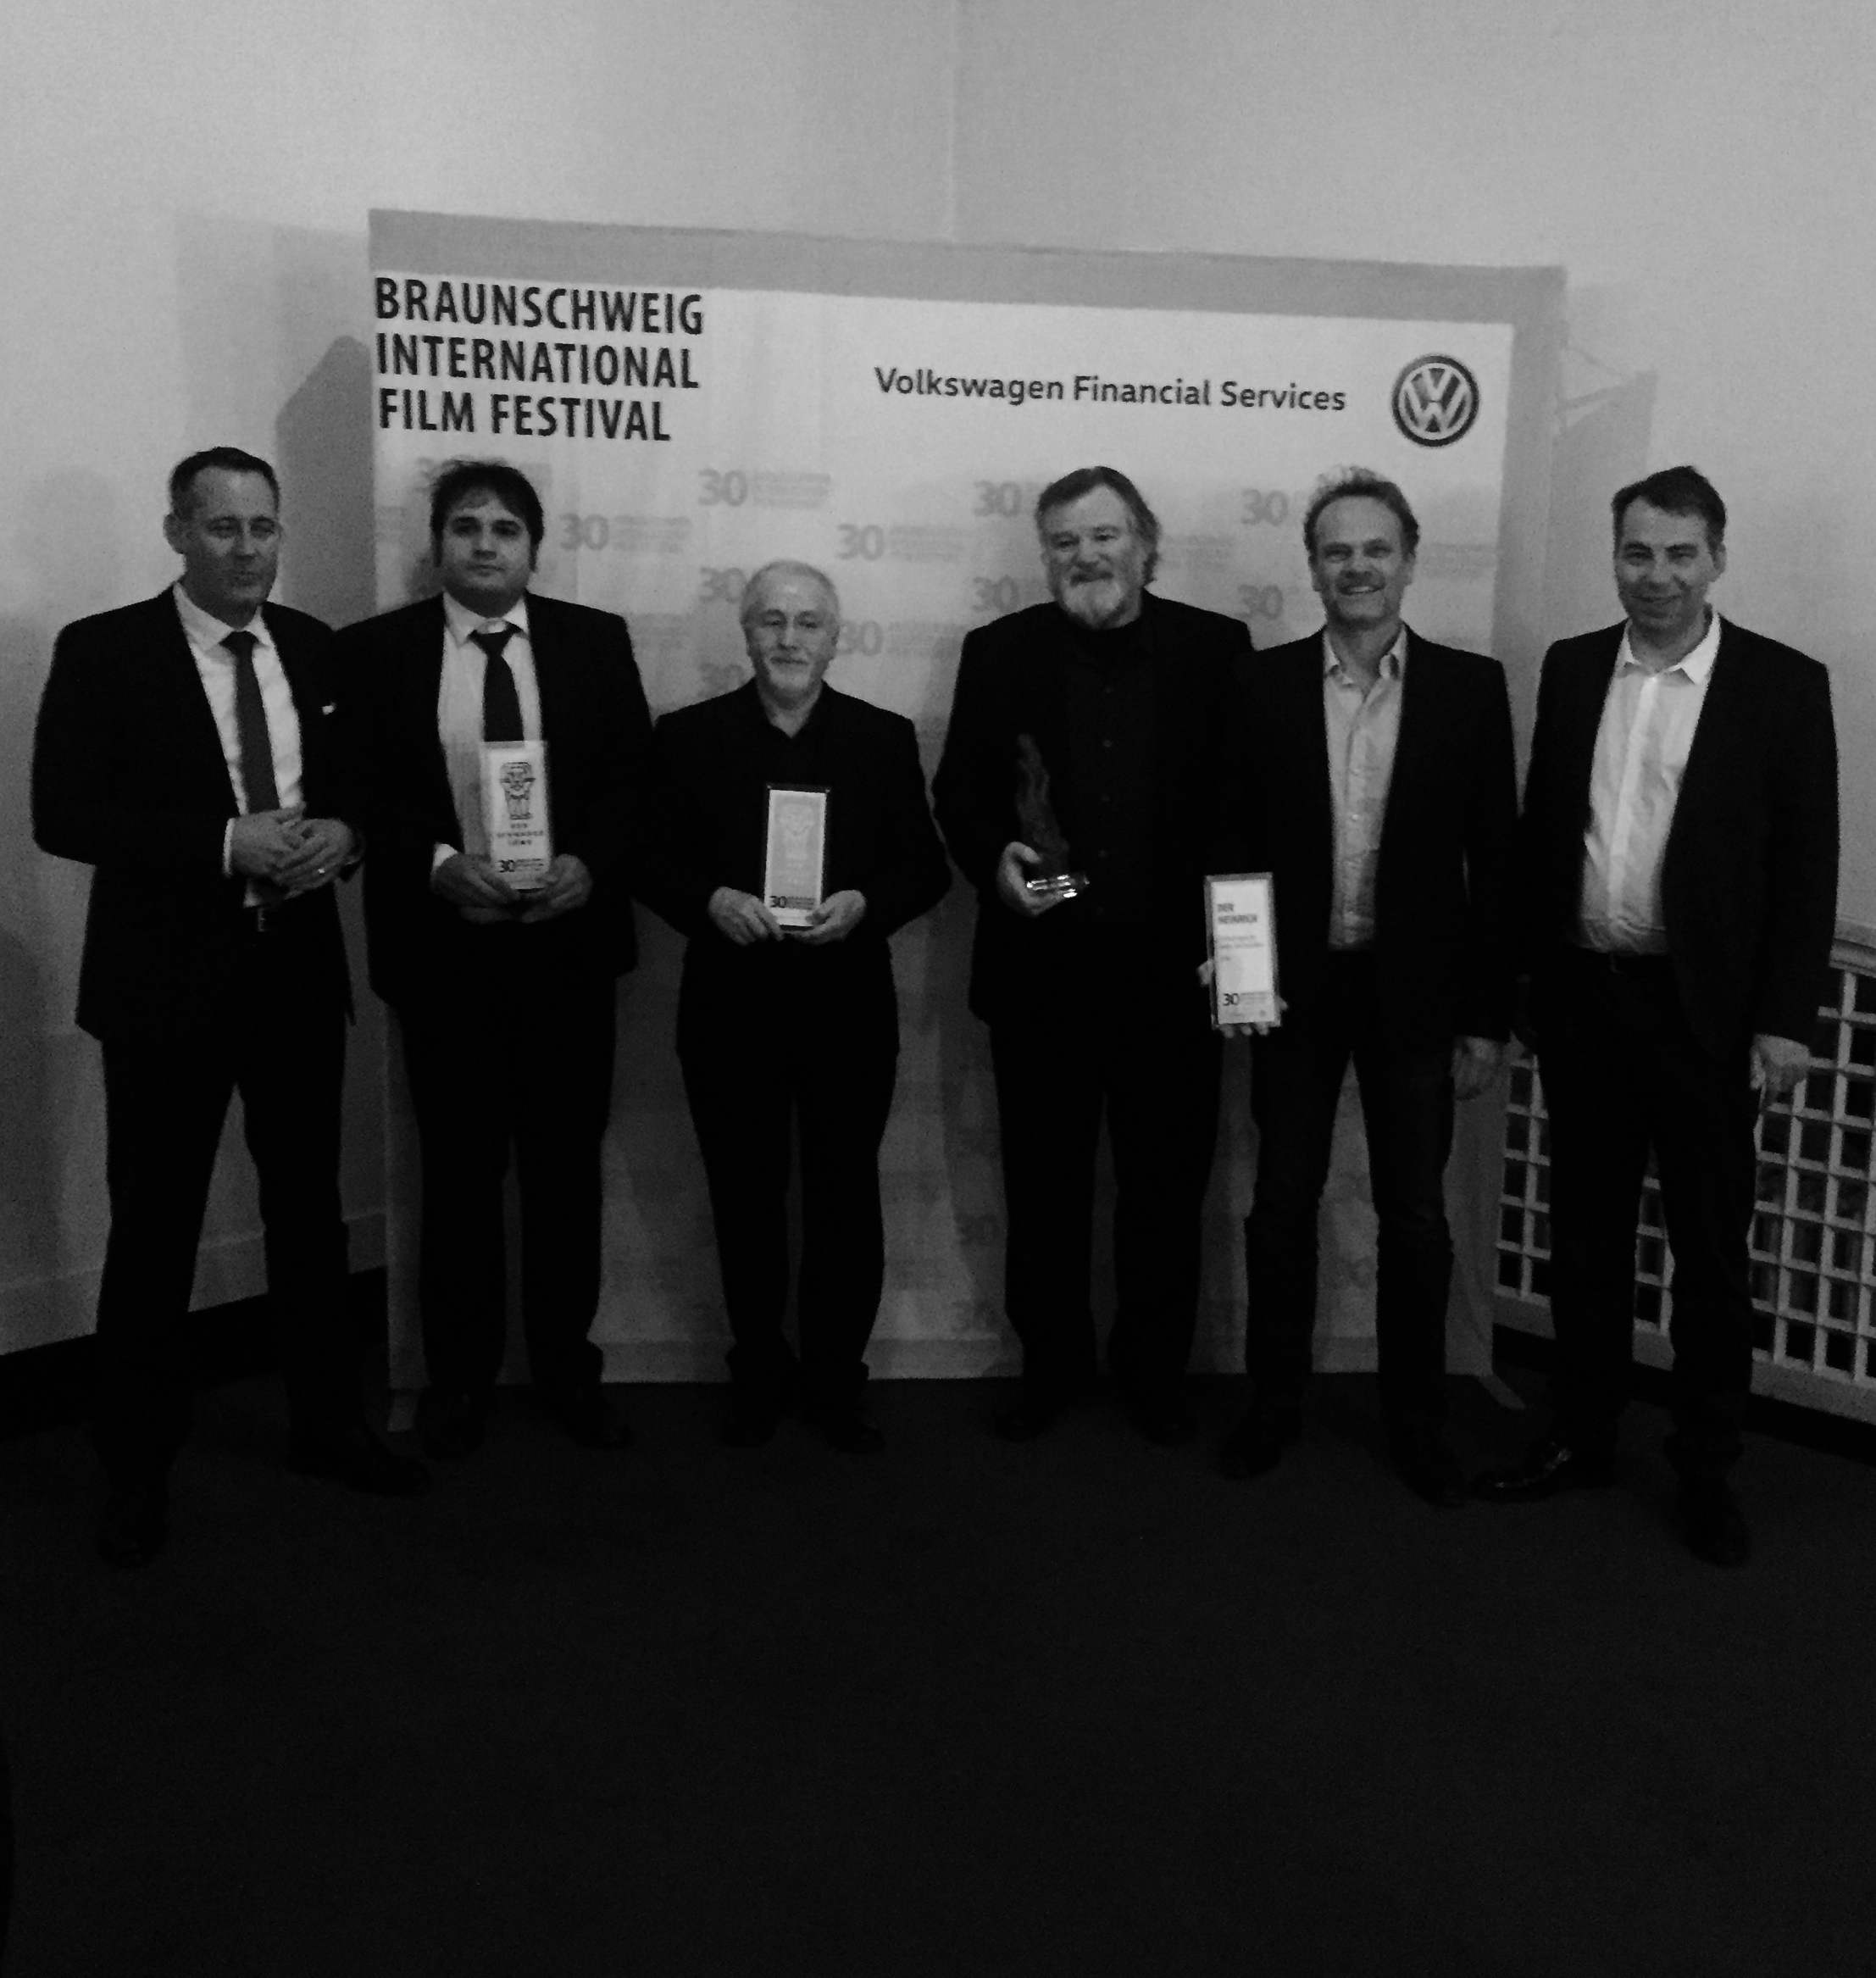 Award winners, composer Patrick Doyle and actors Brendan Gleeson and Reinout Bussemaker